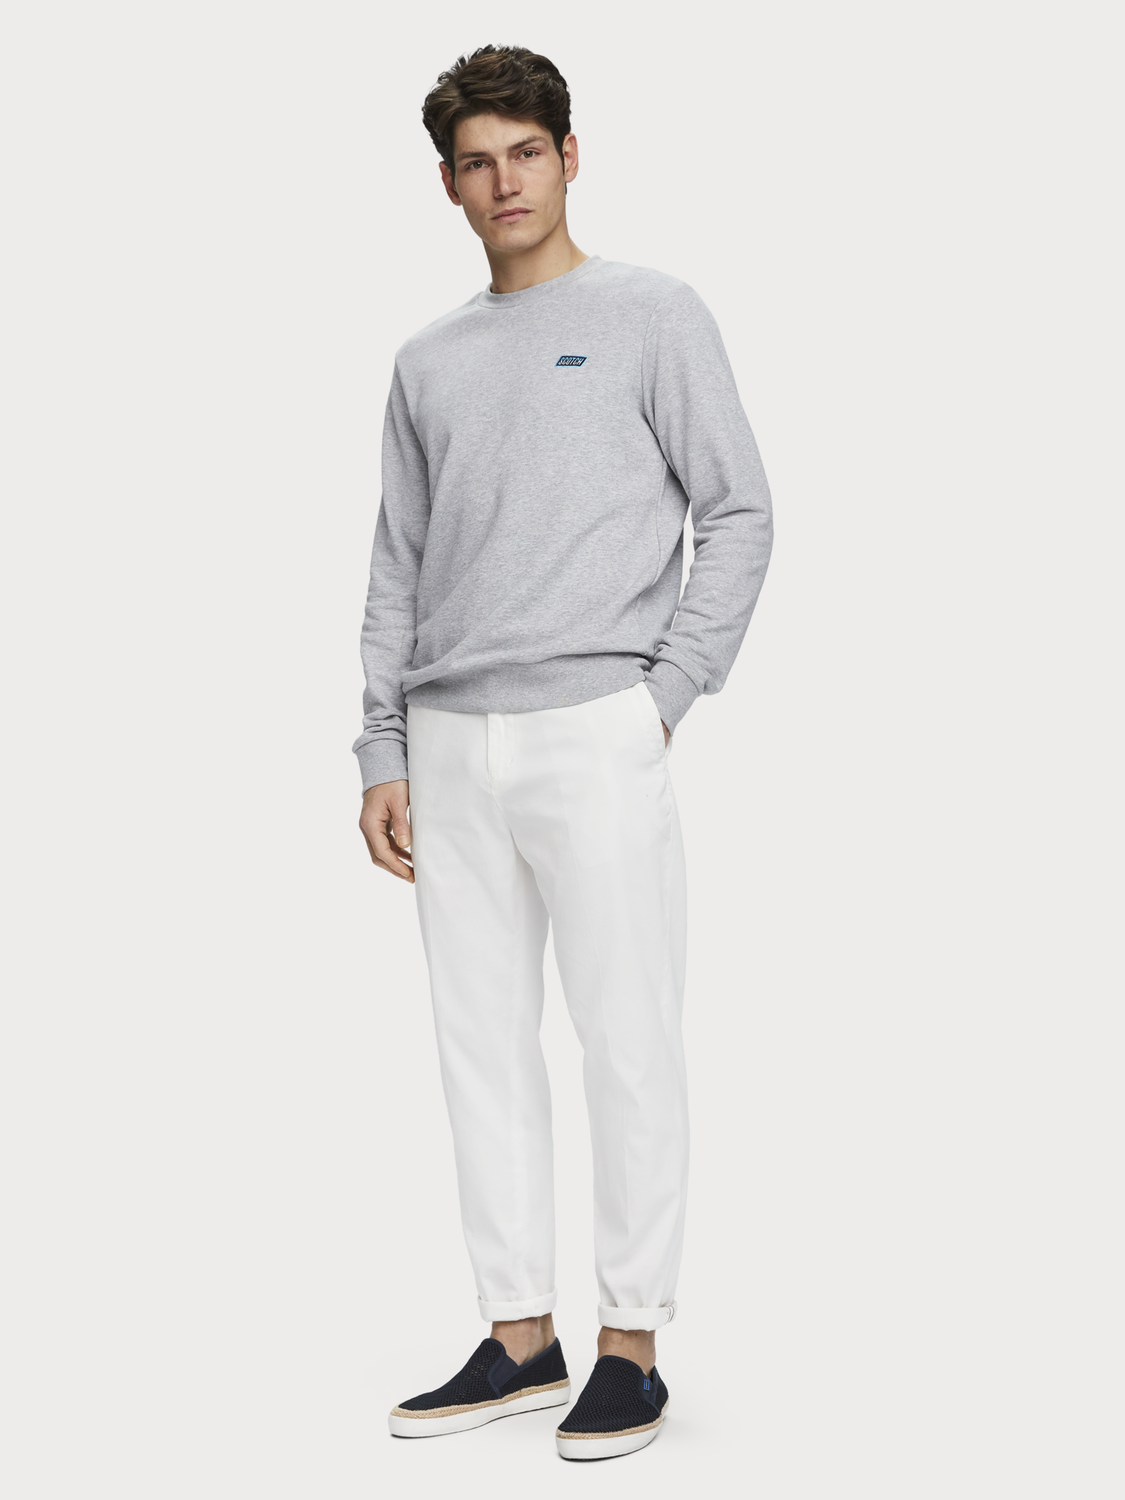 Men Fave - structured chinos | Regular tapered fit